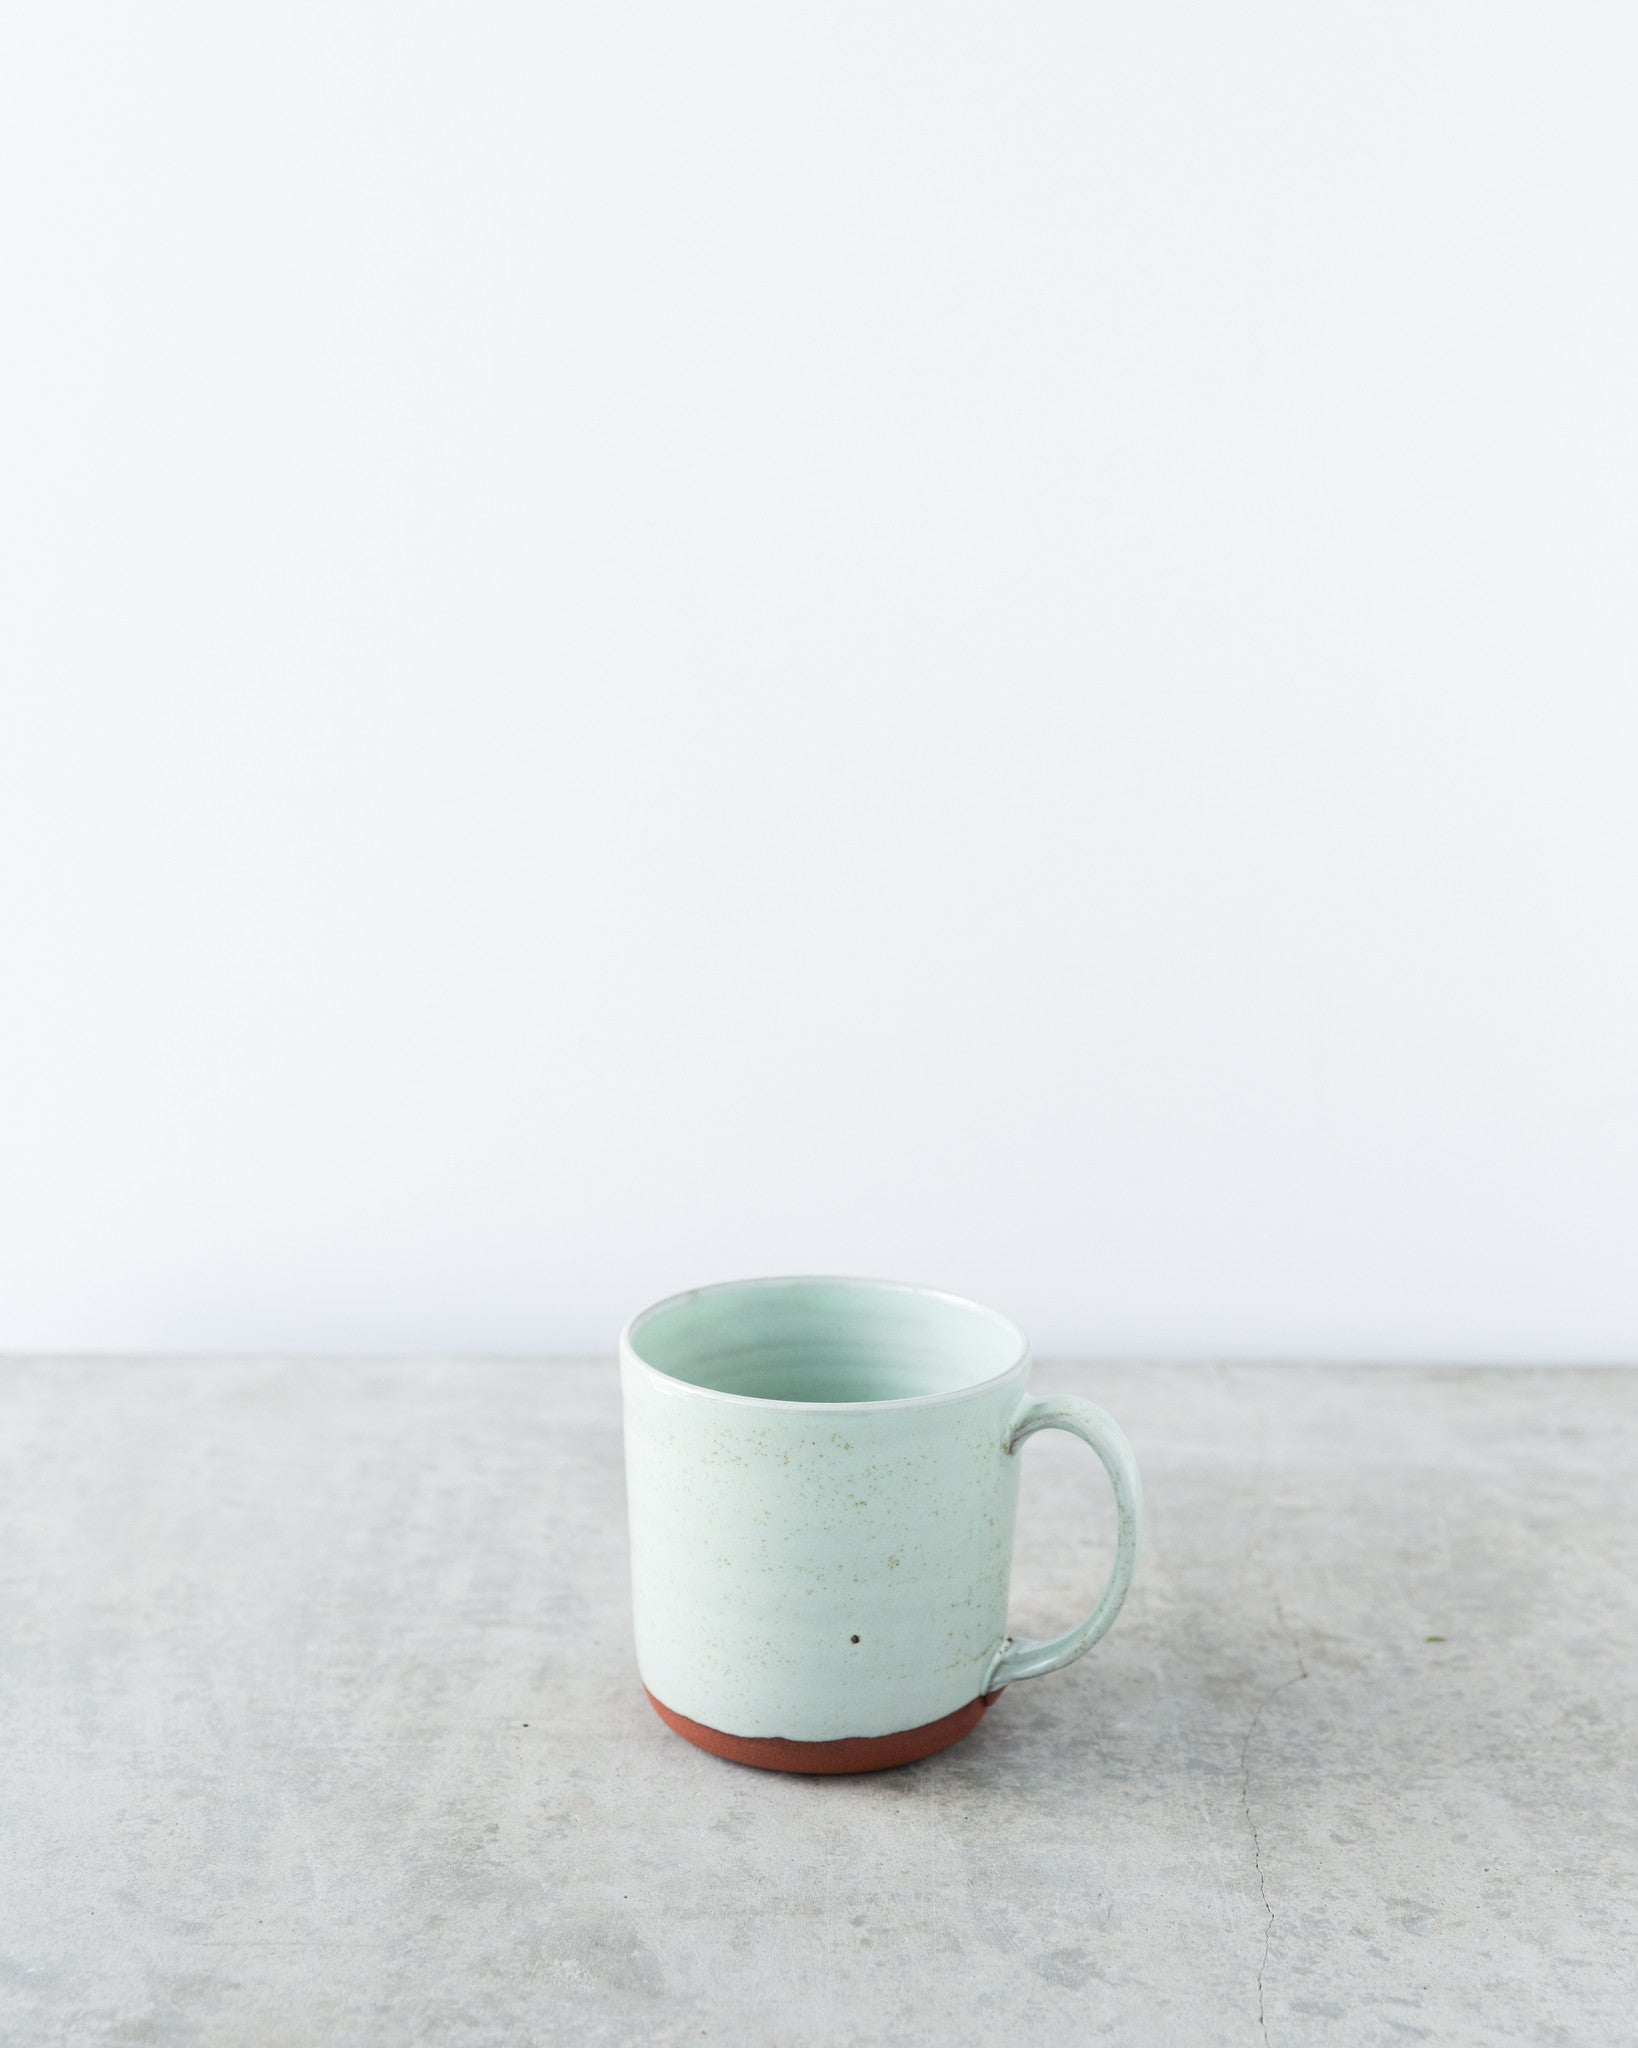 Kalika Bowlby Nest Collection Mug in Mint Green